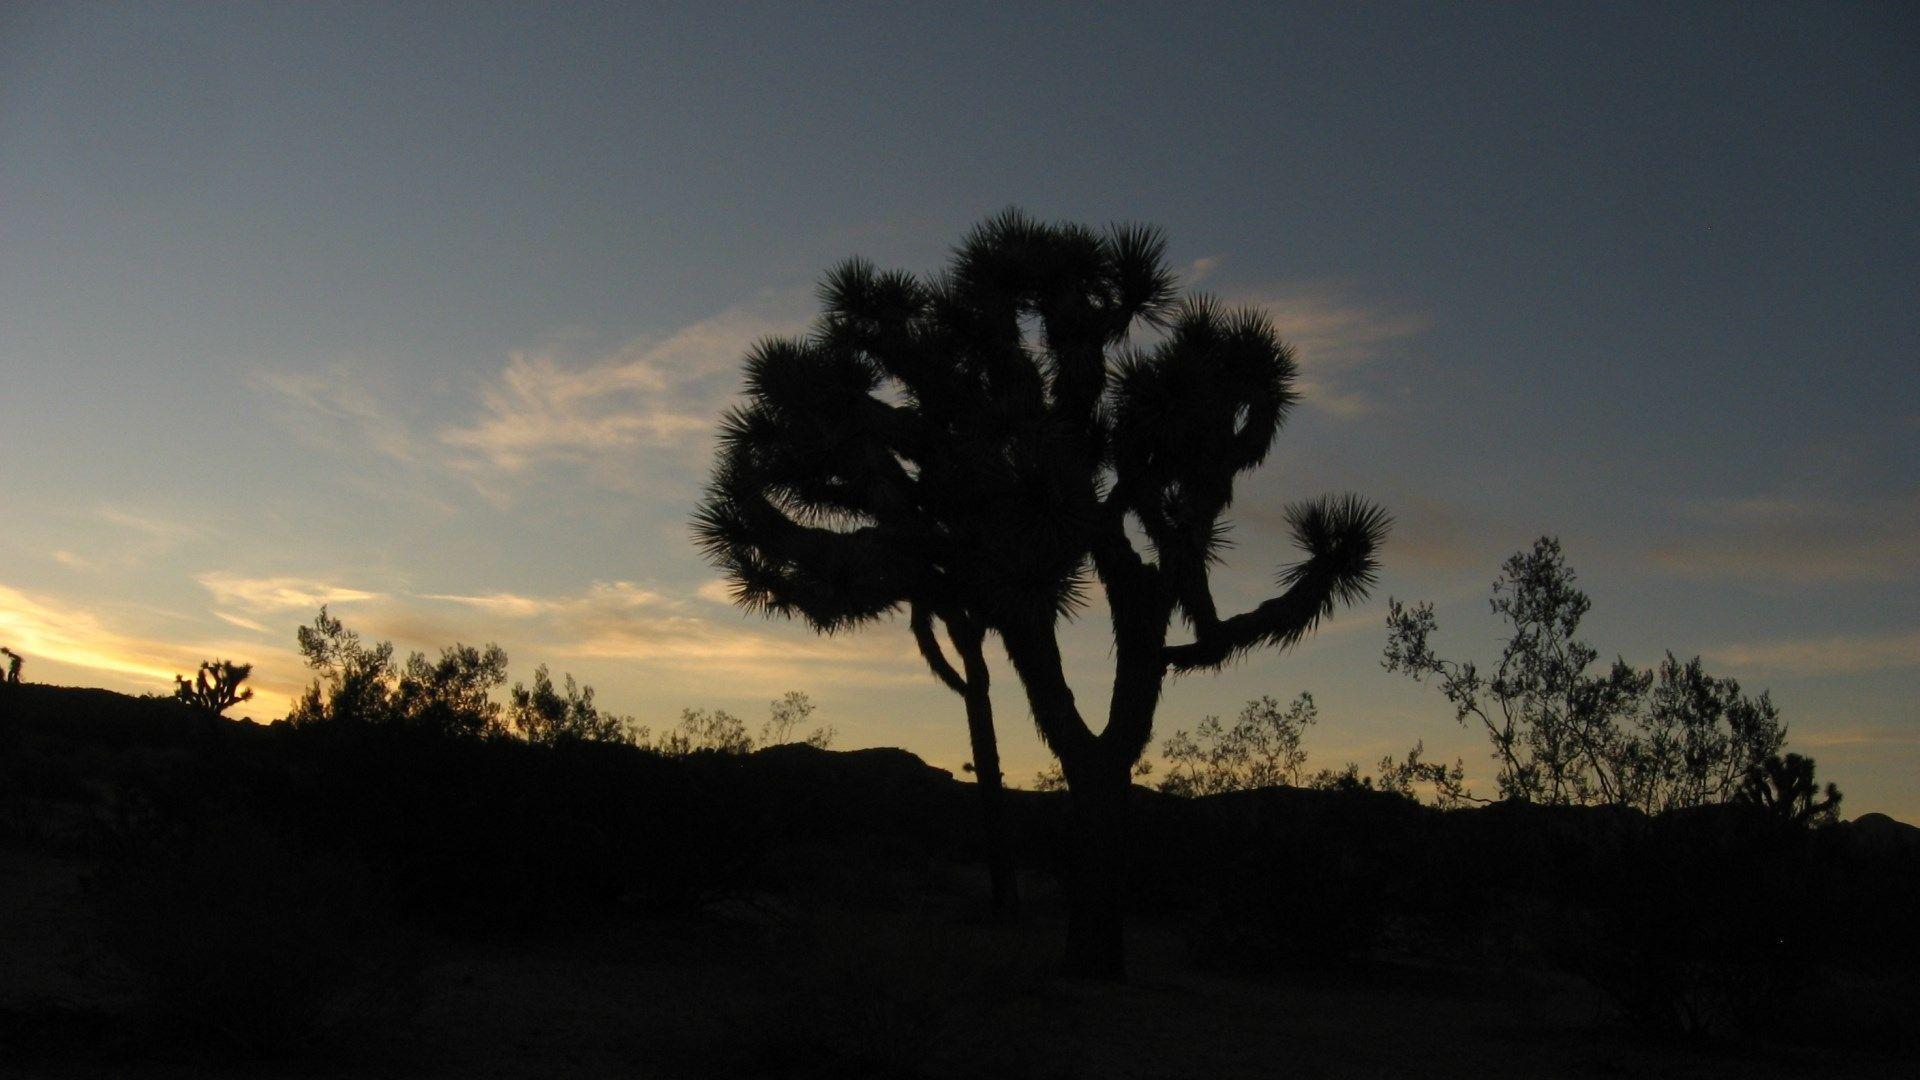 joshua tree national park wallpapers 1080p high quality, 1920x1080